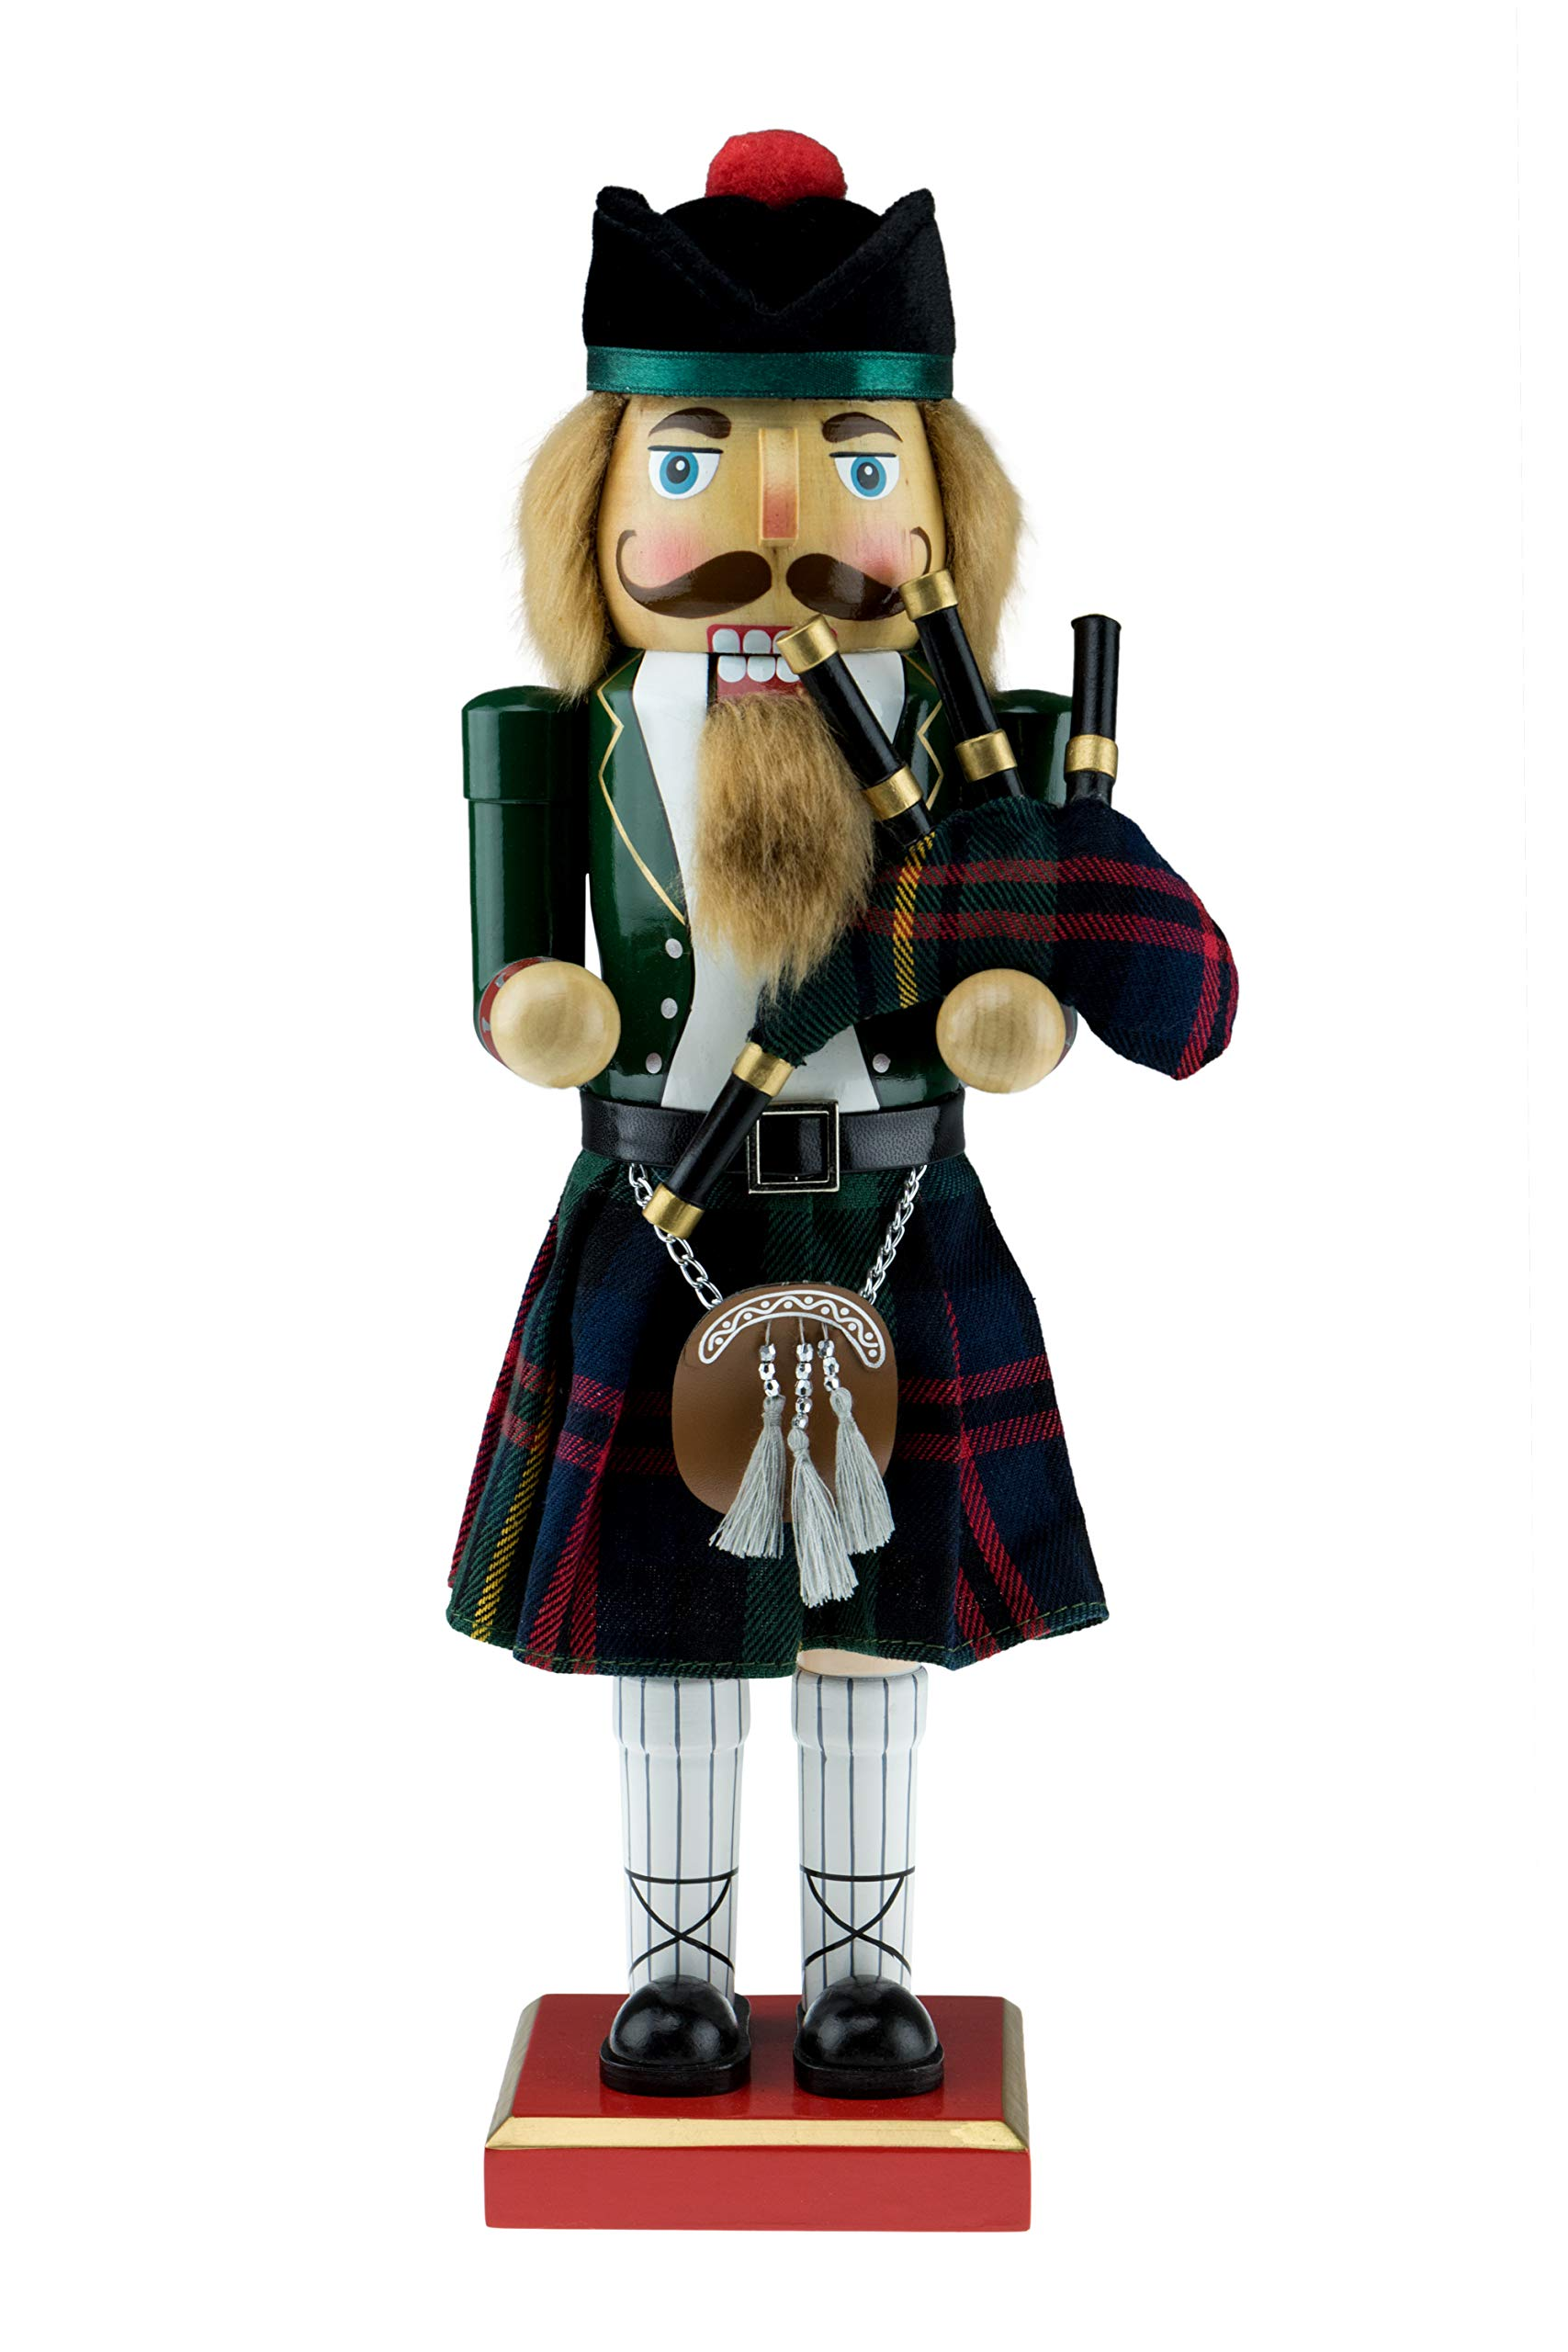 "Scottish Soldier Nutcracker by Clever Creations | Wearing Scottish Outfit with Bag Pipes | Festive Collectable Christmas Decor | Perfect for Shelves and Tables | 100% Wood | 14"" Tall with Bagpipes"